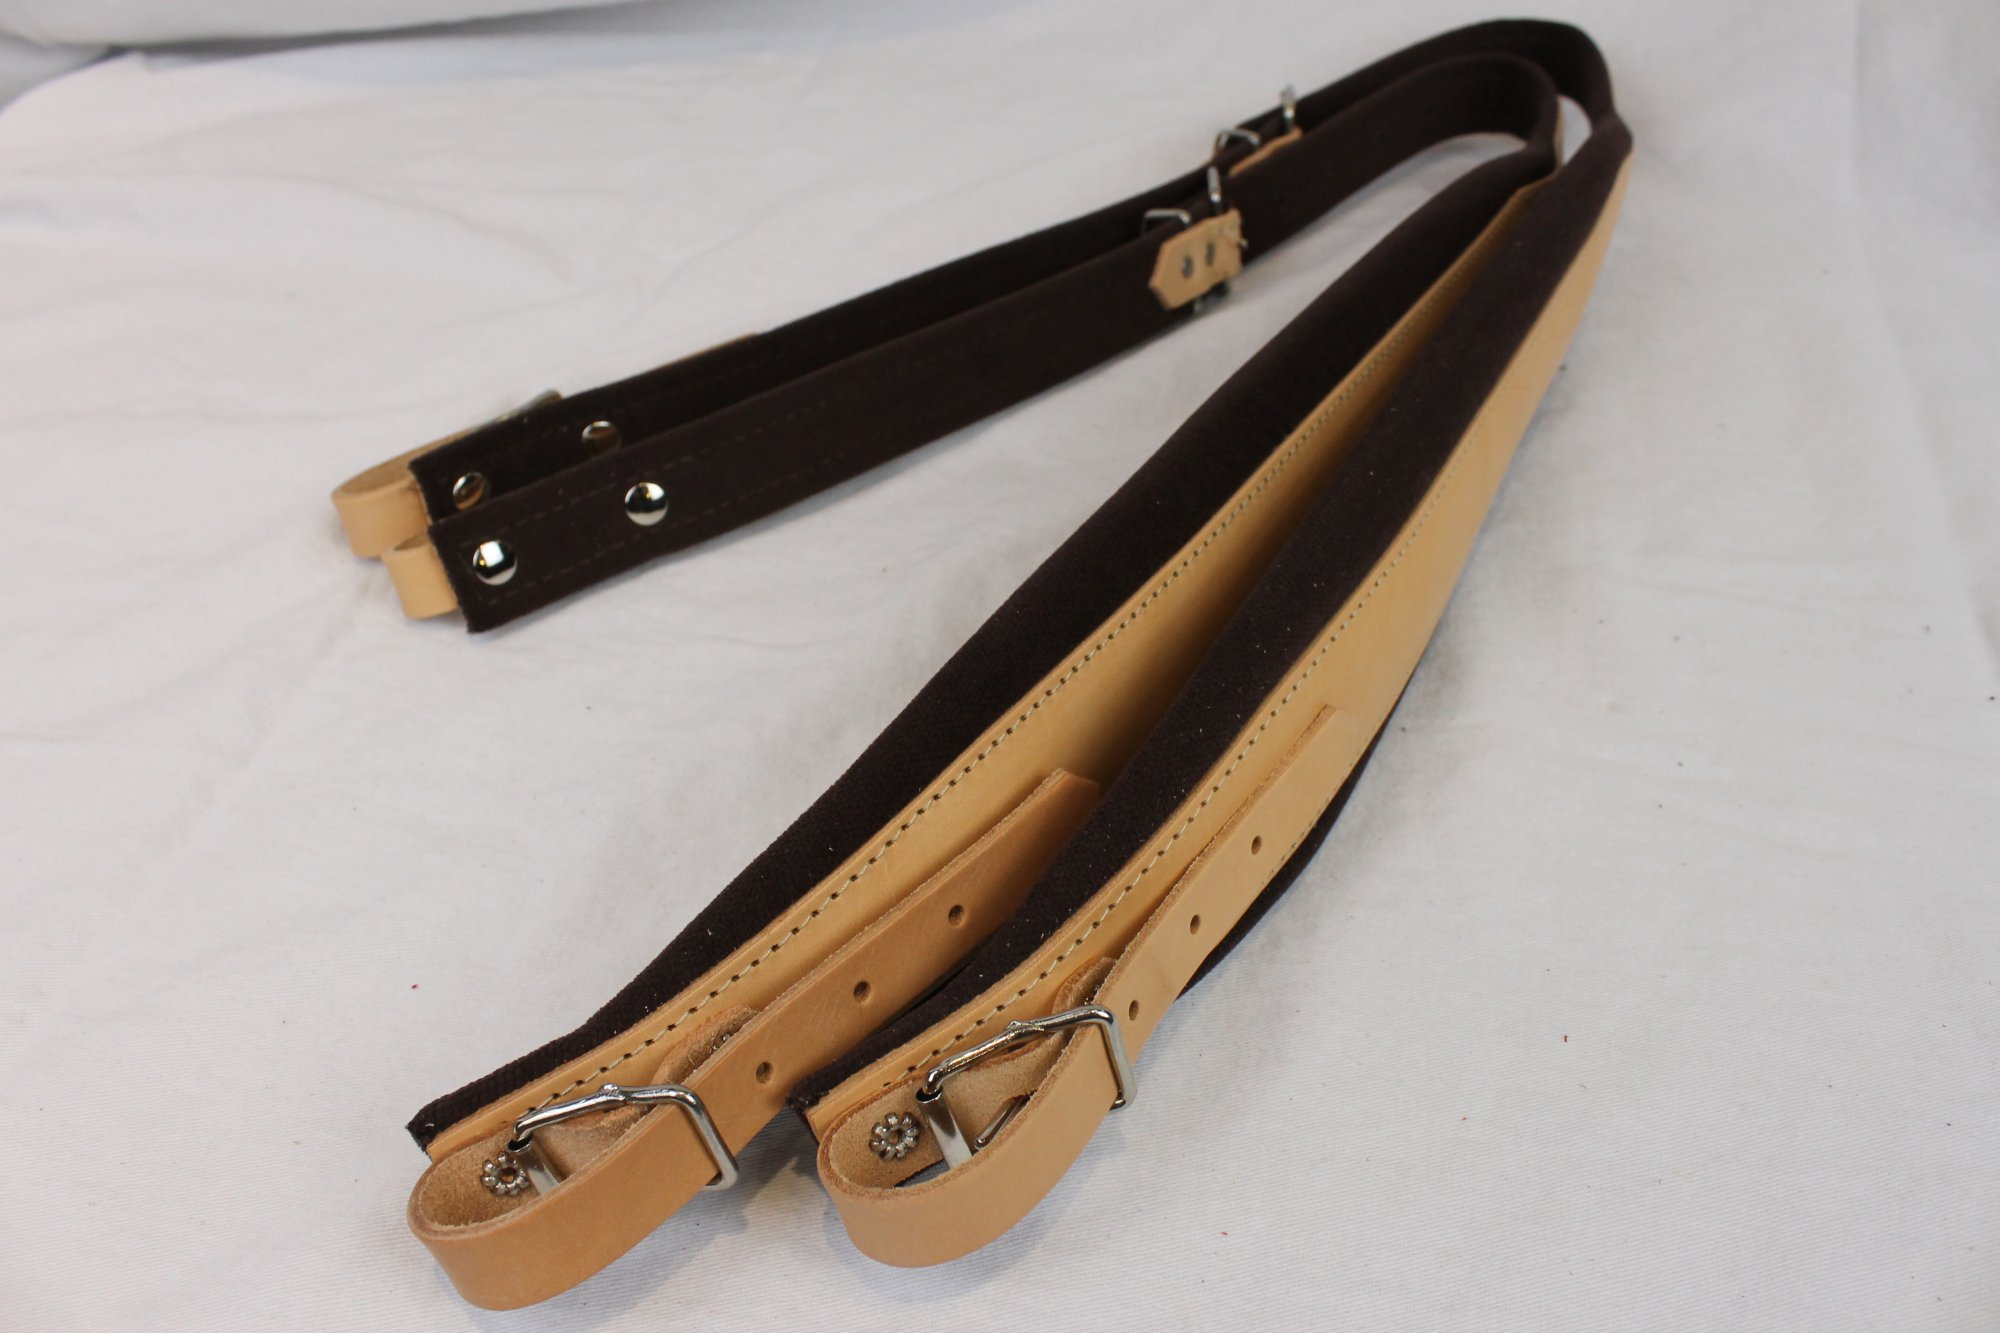 New Tan Leather Brown Velour Fuselli Accordion Shoulder Straps Width (7cm / 2.8in) Length (85~105cm / 33.5~41.3in)